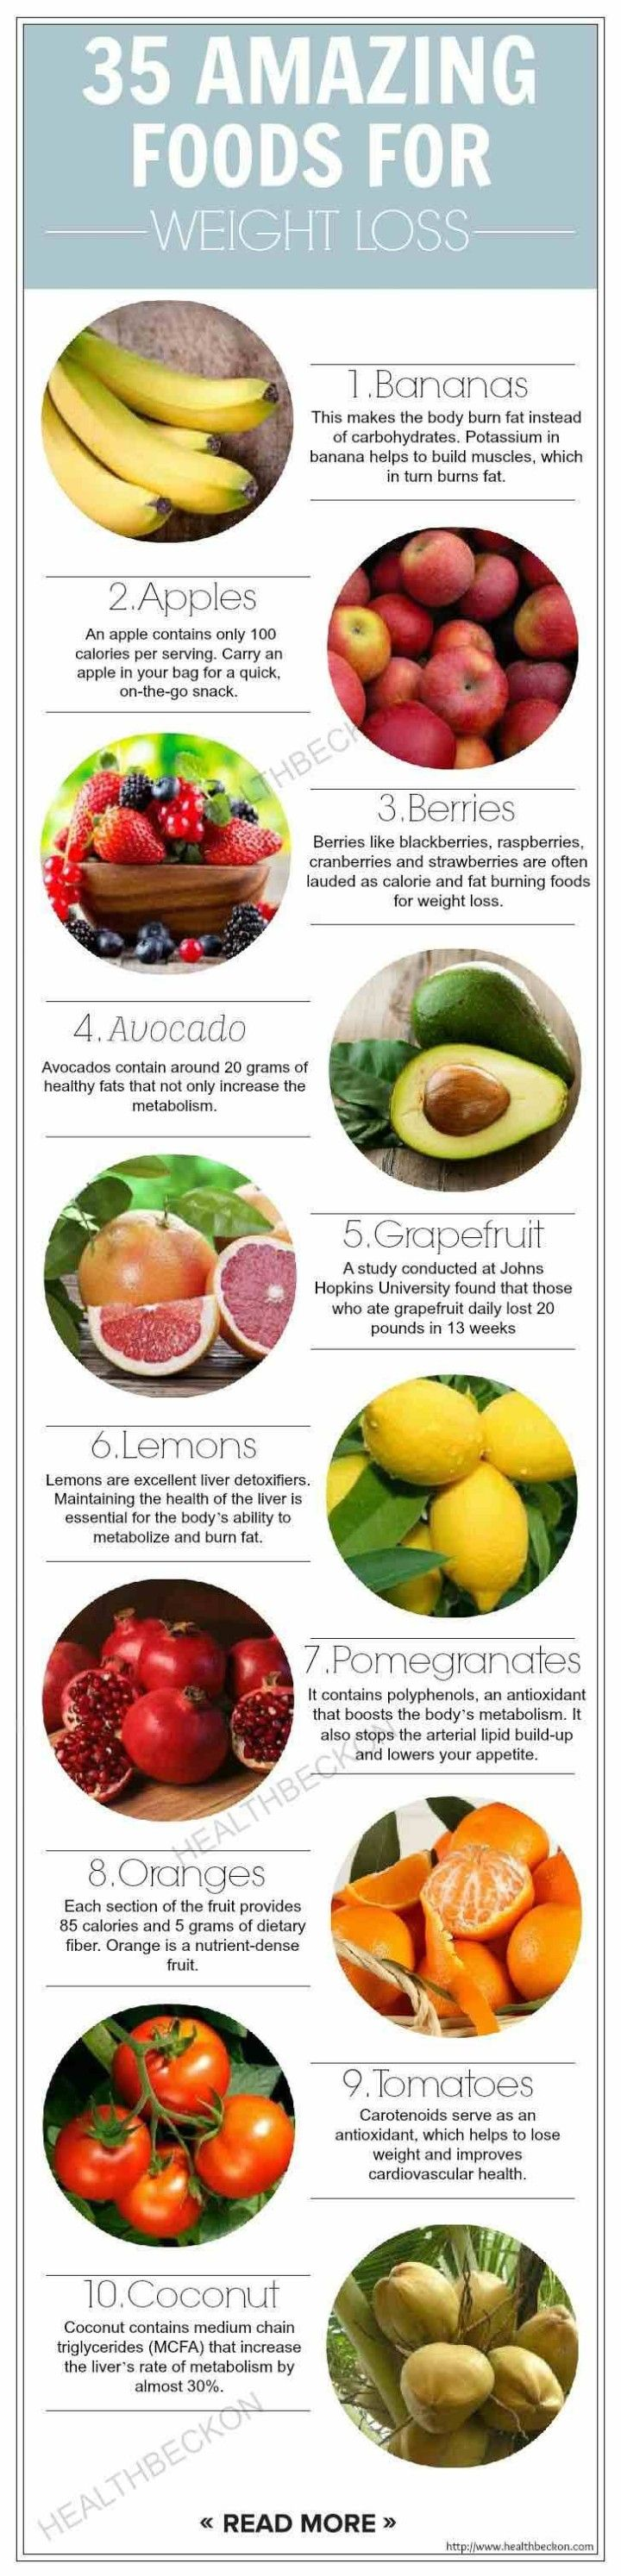 The ultimate list: 35 amazing foods for weight loss via healthbeckon